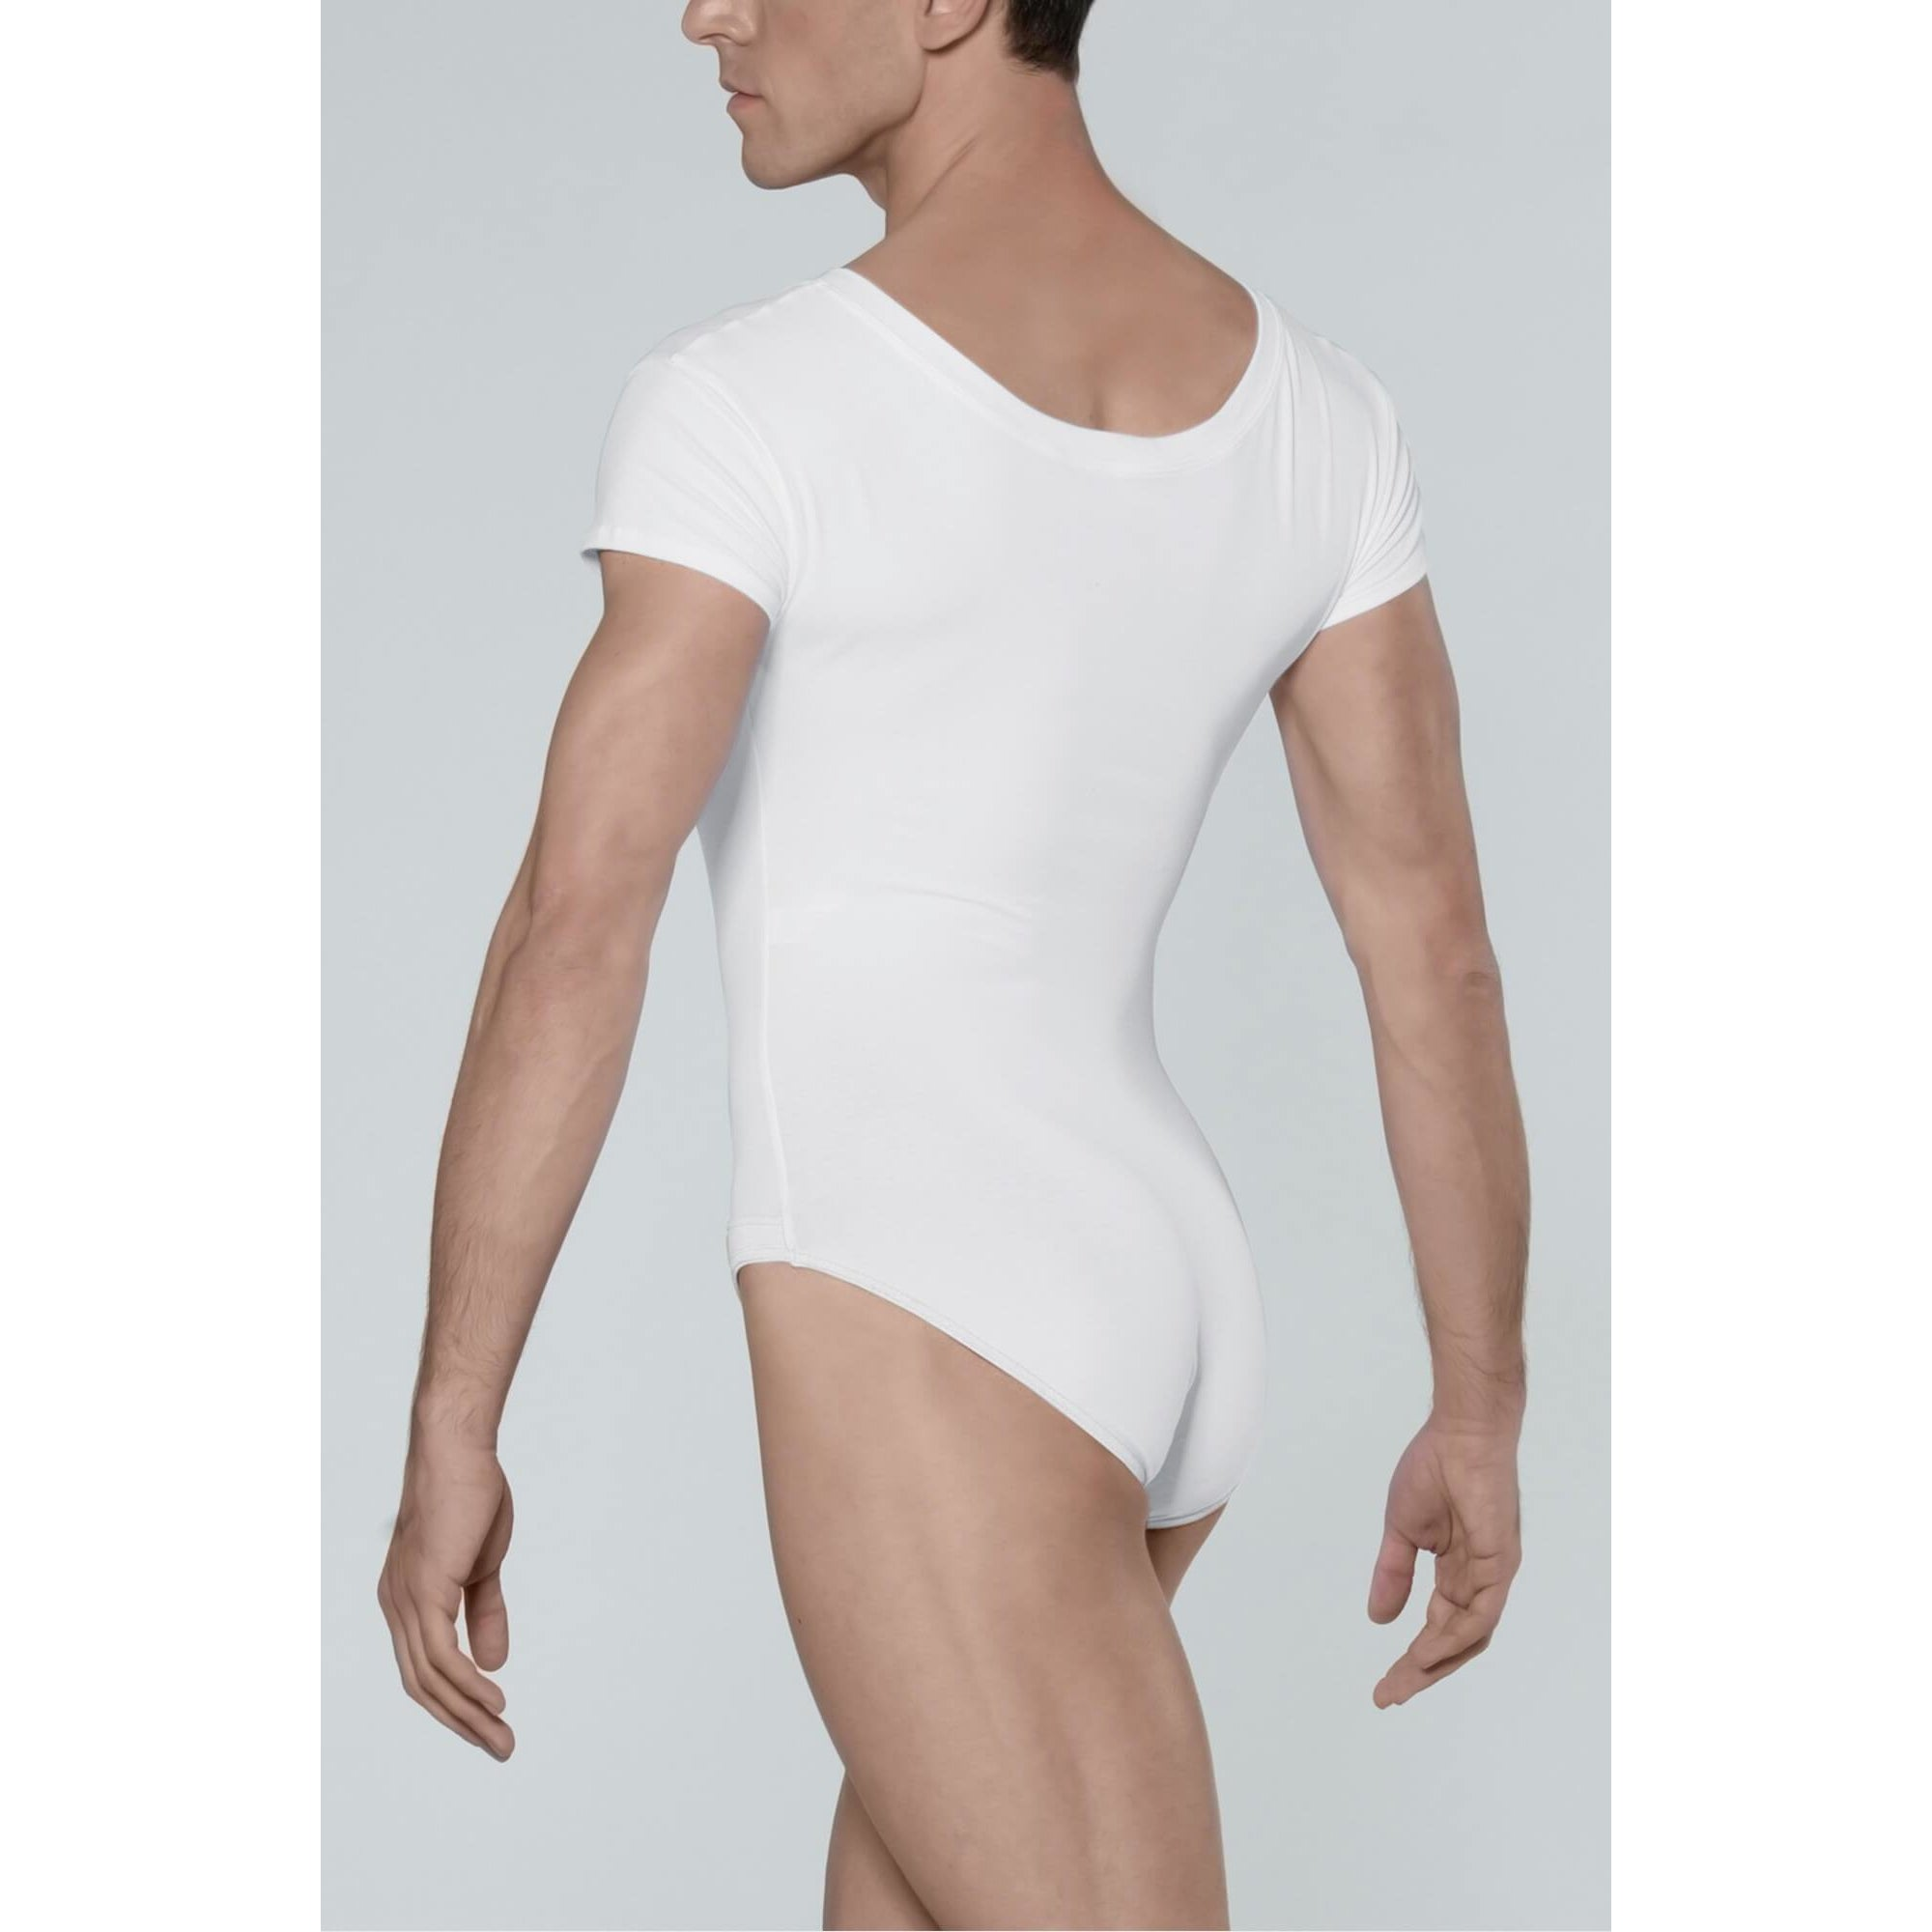 Wear Moi Men's Altan Short Sleeve Leotard